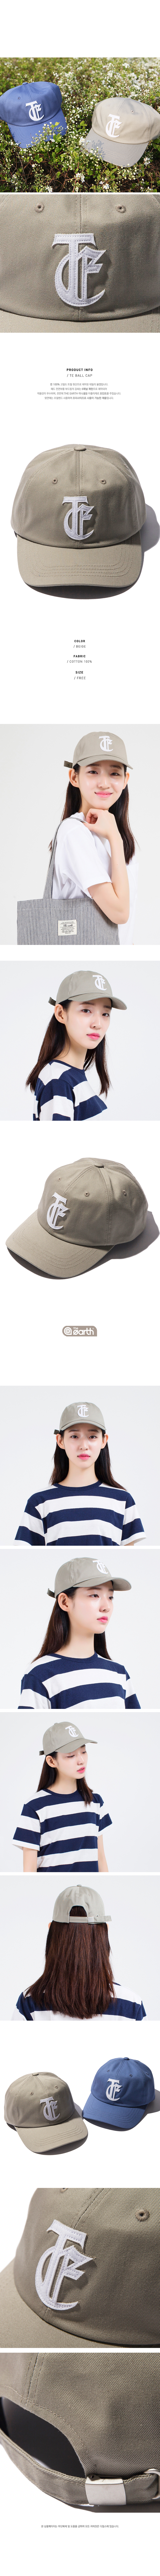 디얼스(THE EARTH) TE BALL CAP - BEIGE